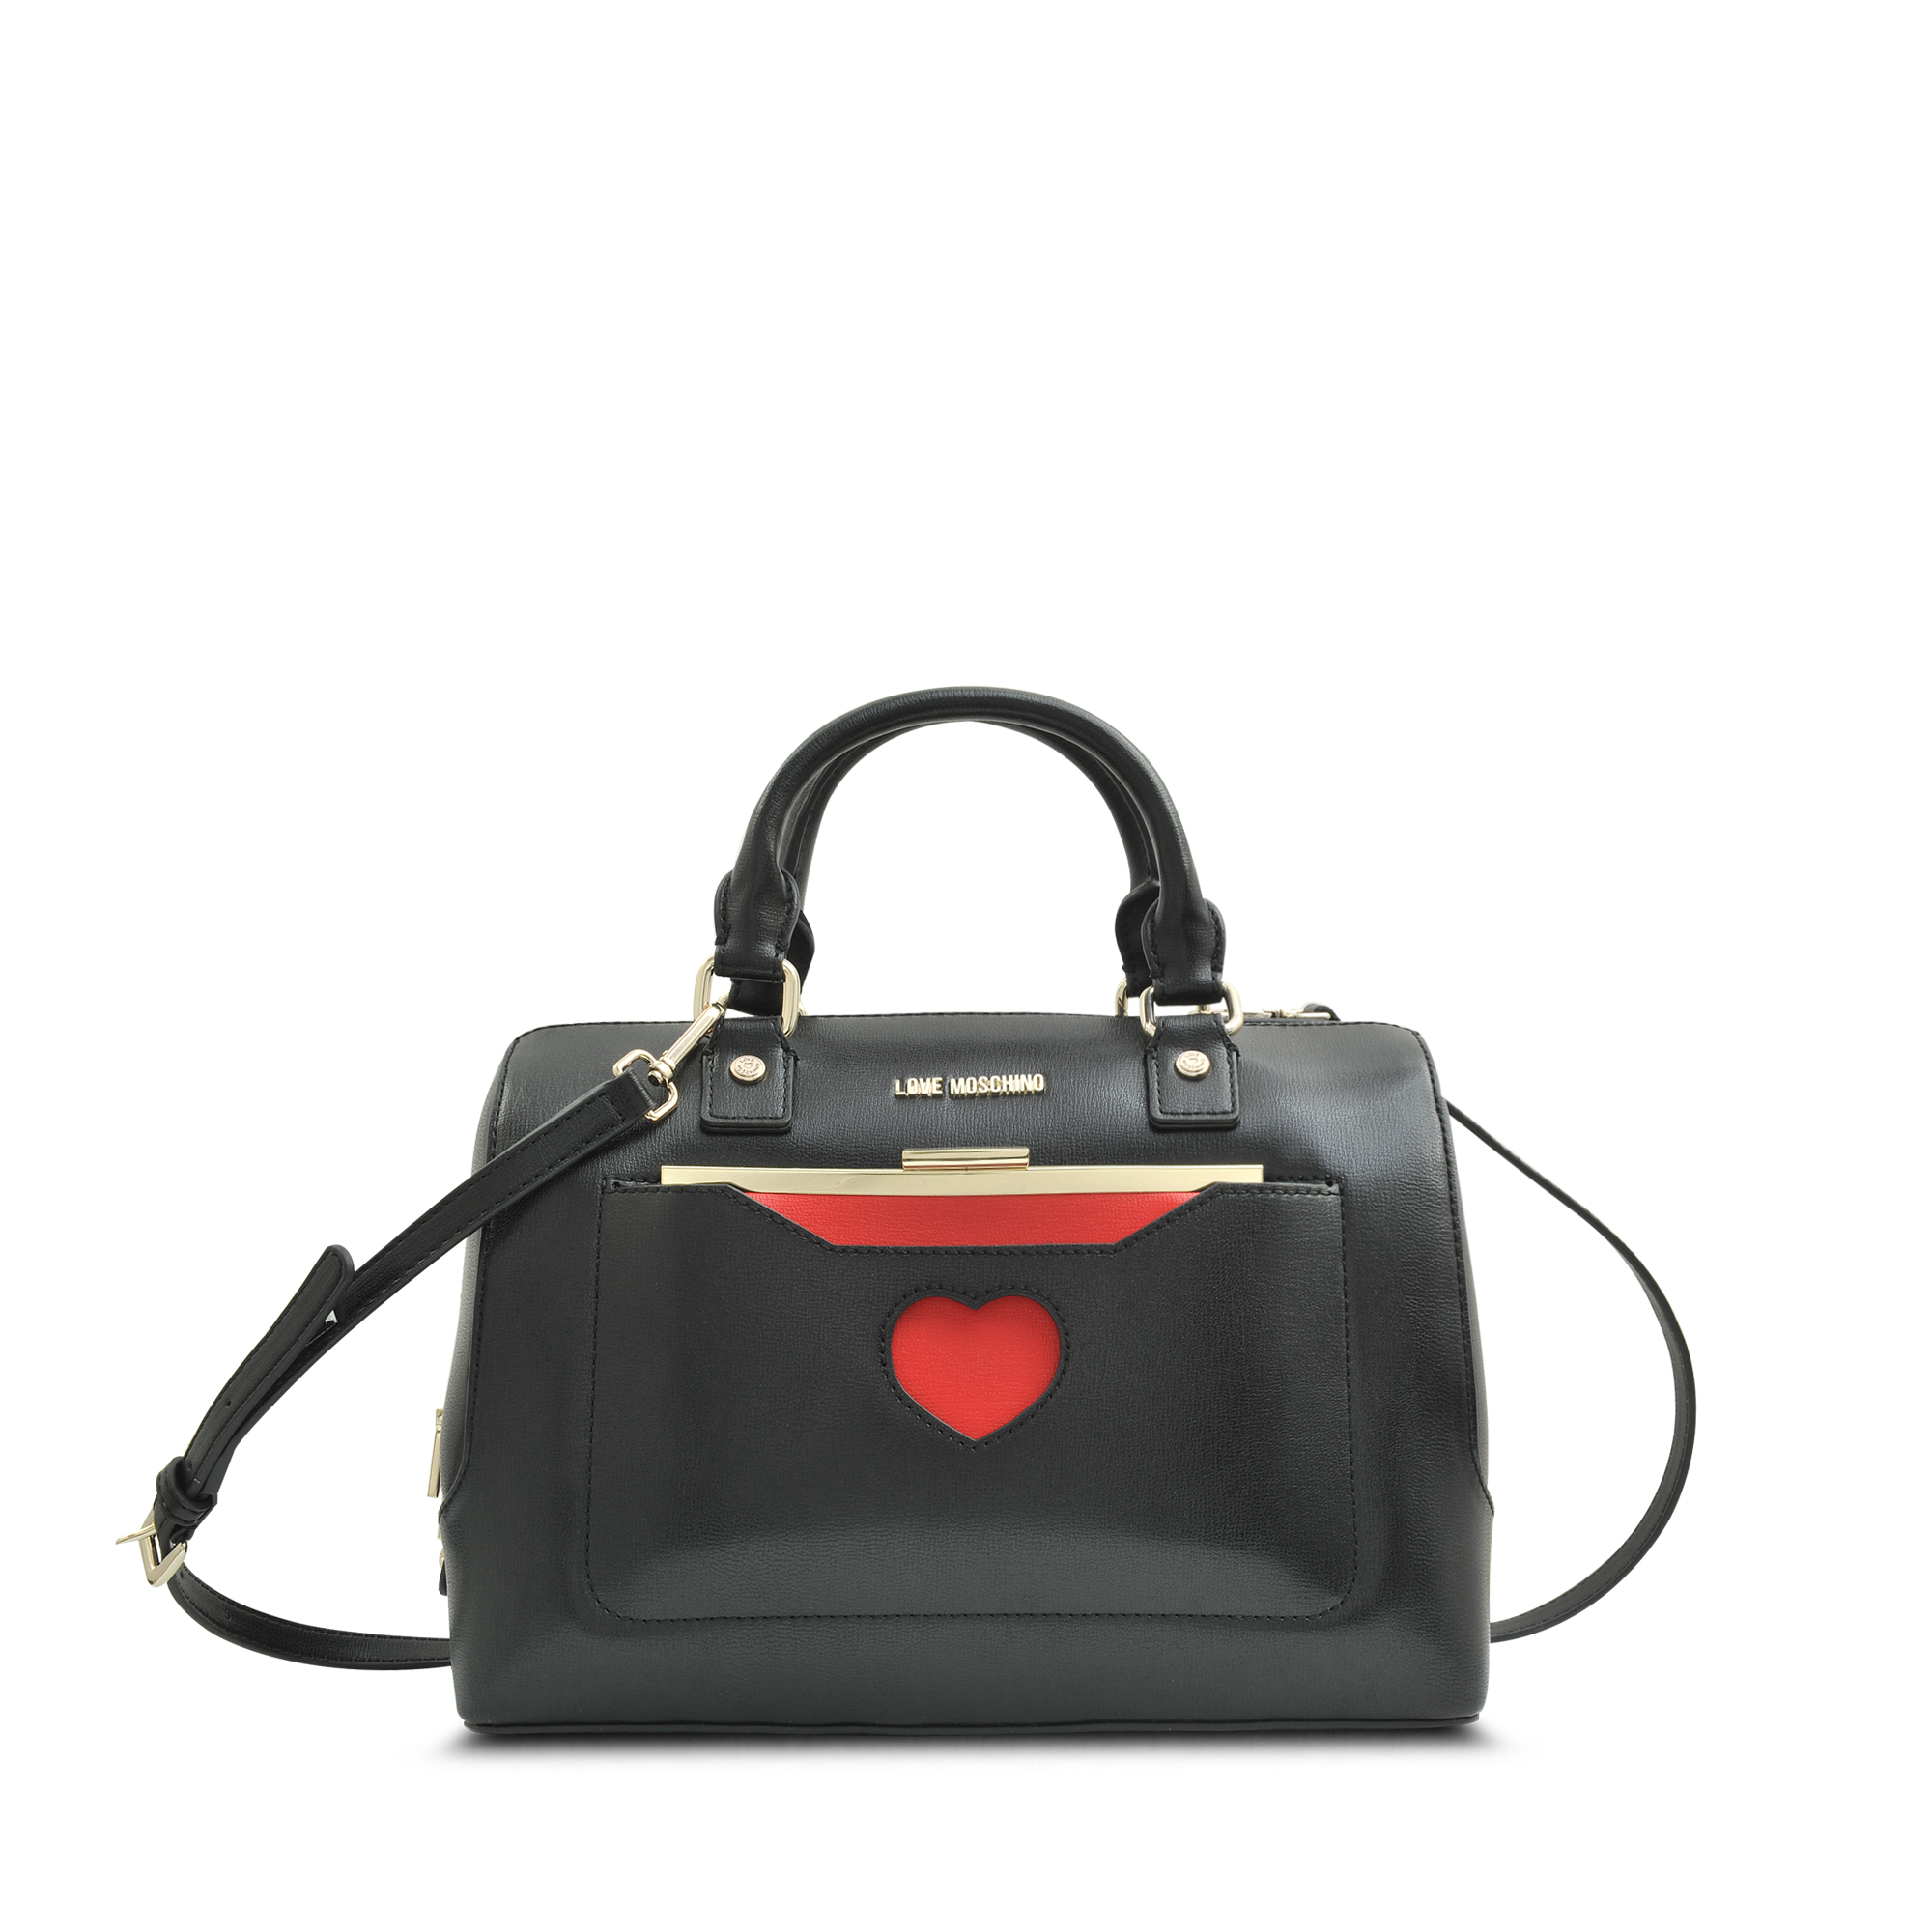 Moschino Love: The new bags in the series will want to keep-http://re-elfashion.com/